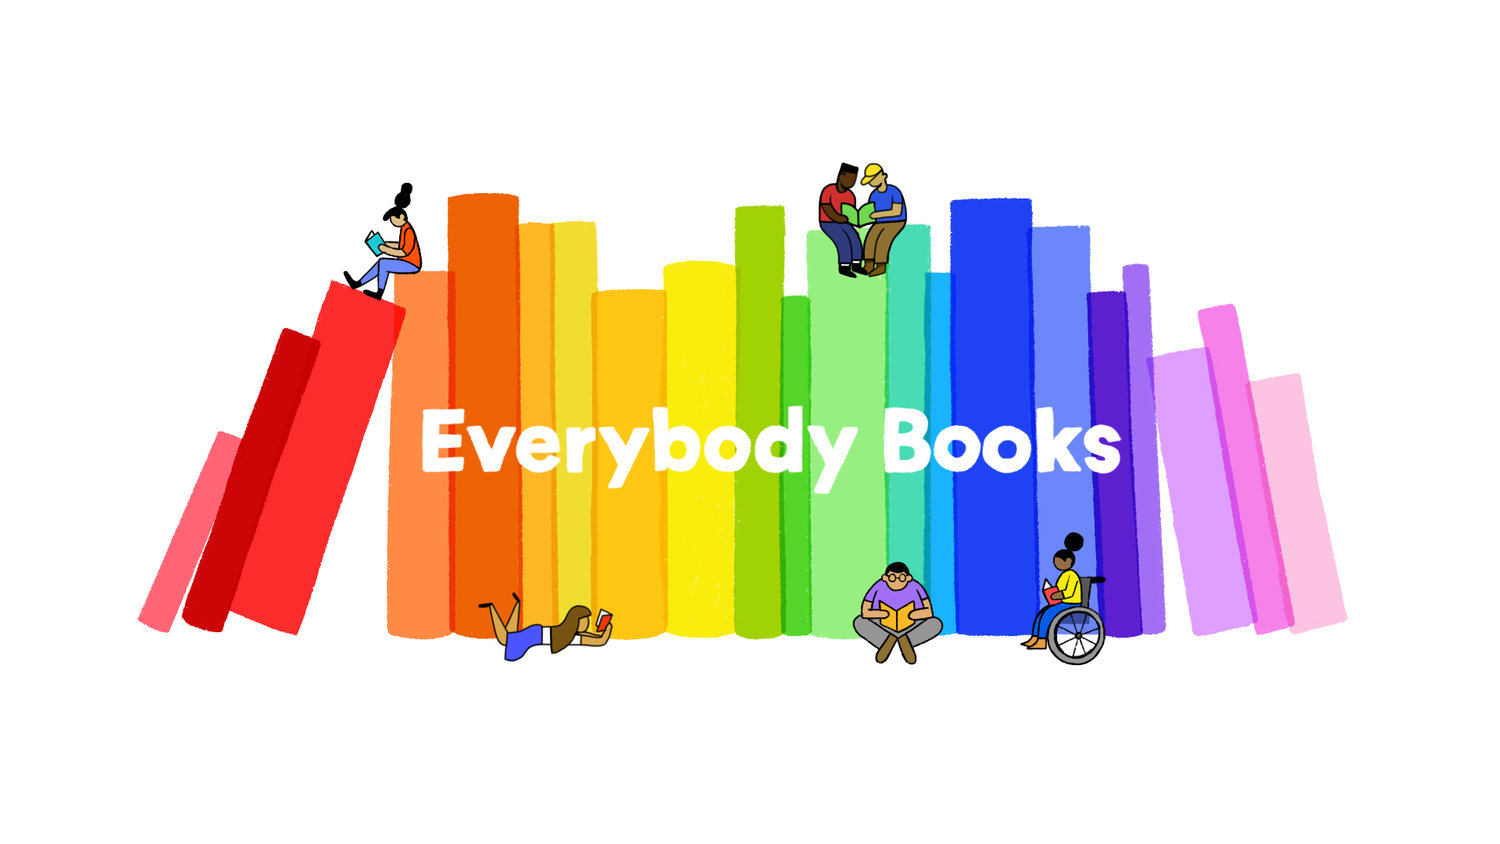 Everybody Books